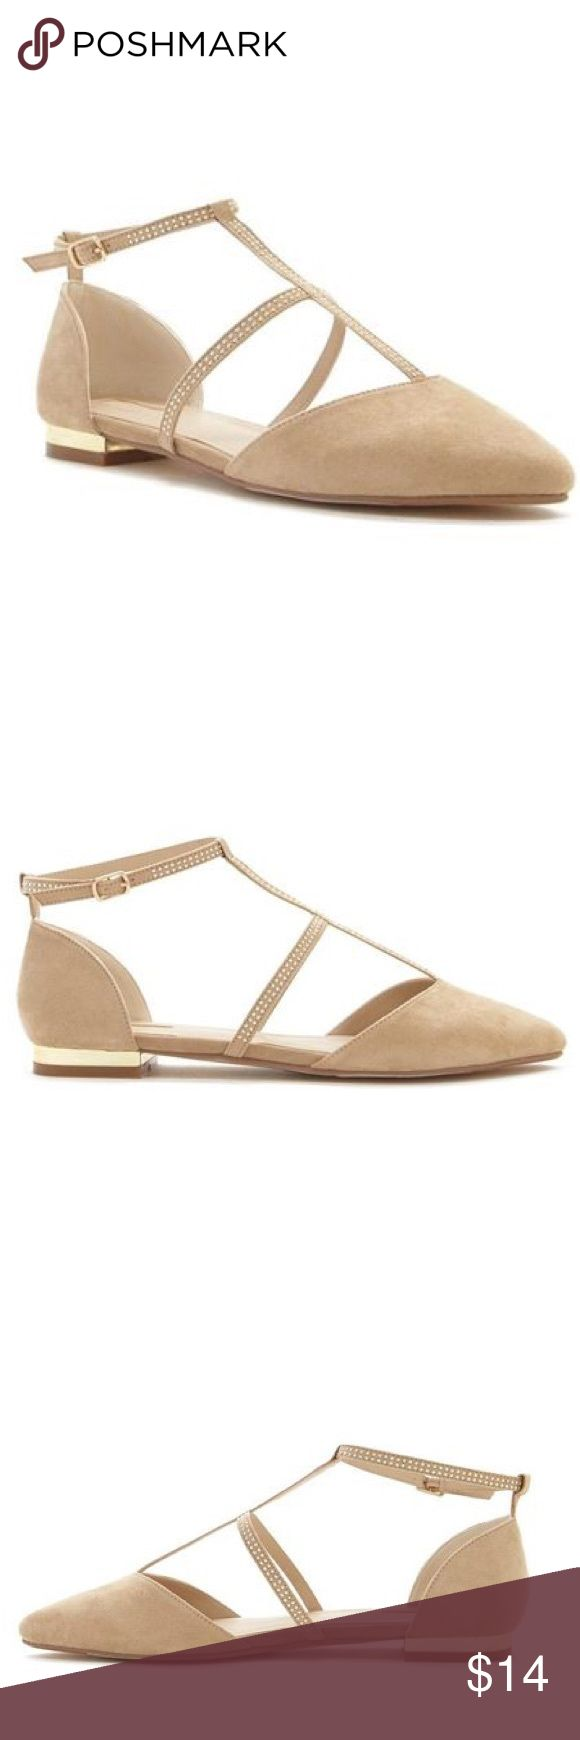 """Nude pointed toe flats A Pair Of Faux Suede Flats Featuring A Pointed Toe, Cutout Sides, A Strappy Caged Design With High-Polish Studs, An Ankle Strap Closure,And A Low Heel - Padded Insole, Textured Outsole - Upper: 100% Polyester - Lining 1: 87% Polyester, 10% Cotton, 3% Rayon - Lining 2 & Insole: 100% Polyurethane - Outsole 1: 100% Rubber - Outsole 2: 80% Rayon, 15% Cotton, 5% Nylon - Heel Height: 0.5"""" - Shaft Height: 4"""" Forever 21 Shoes Flats & Loafers"""